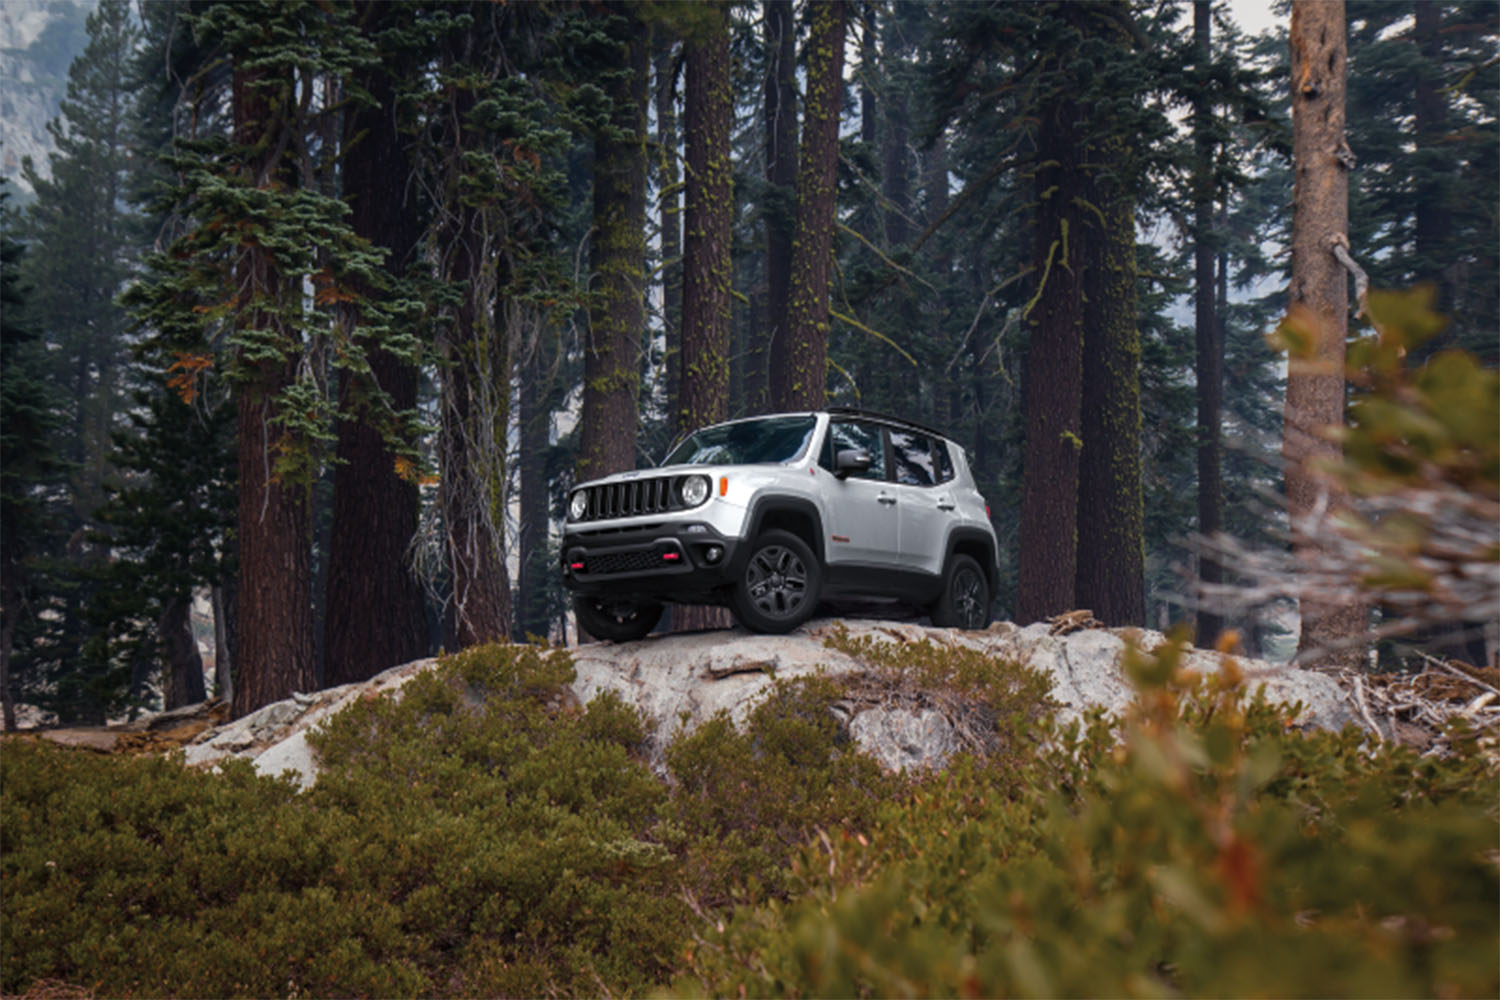 Jeep Dealership Grand Rapids Mi >> Jeep Renegade in Grand Rapids, MI | Courtesy CDJR